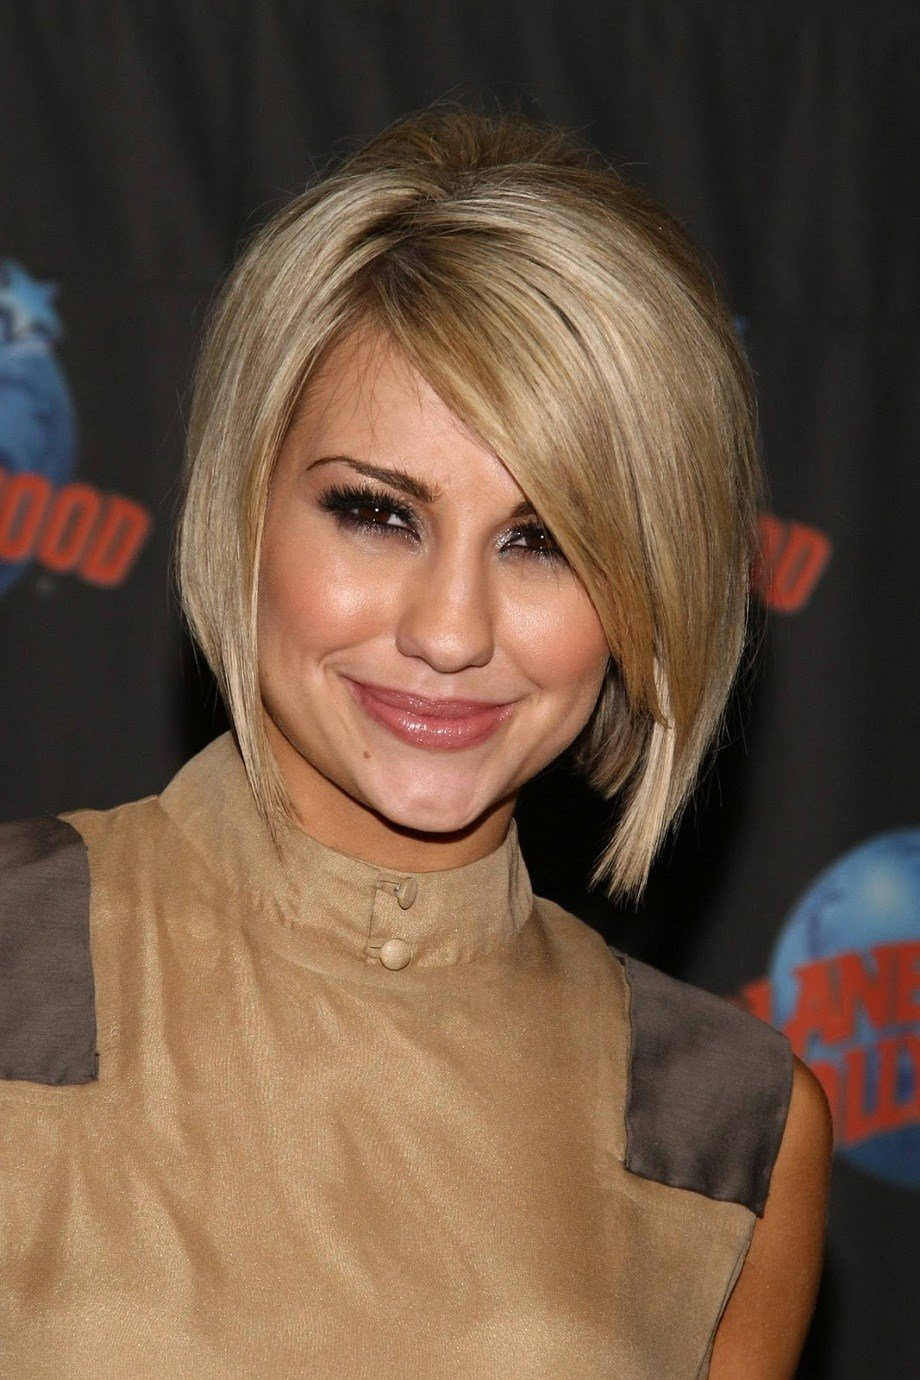 The Best 45 Stunning And Beautiful Collection Of Bob Hairstyles For Women S Pictures